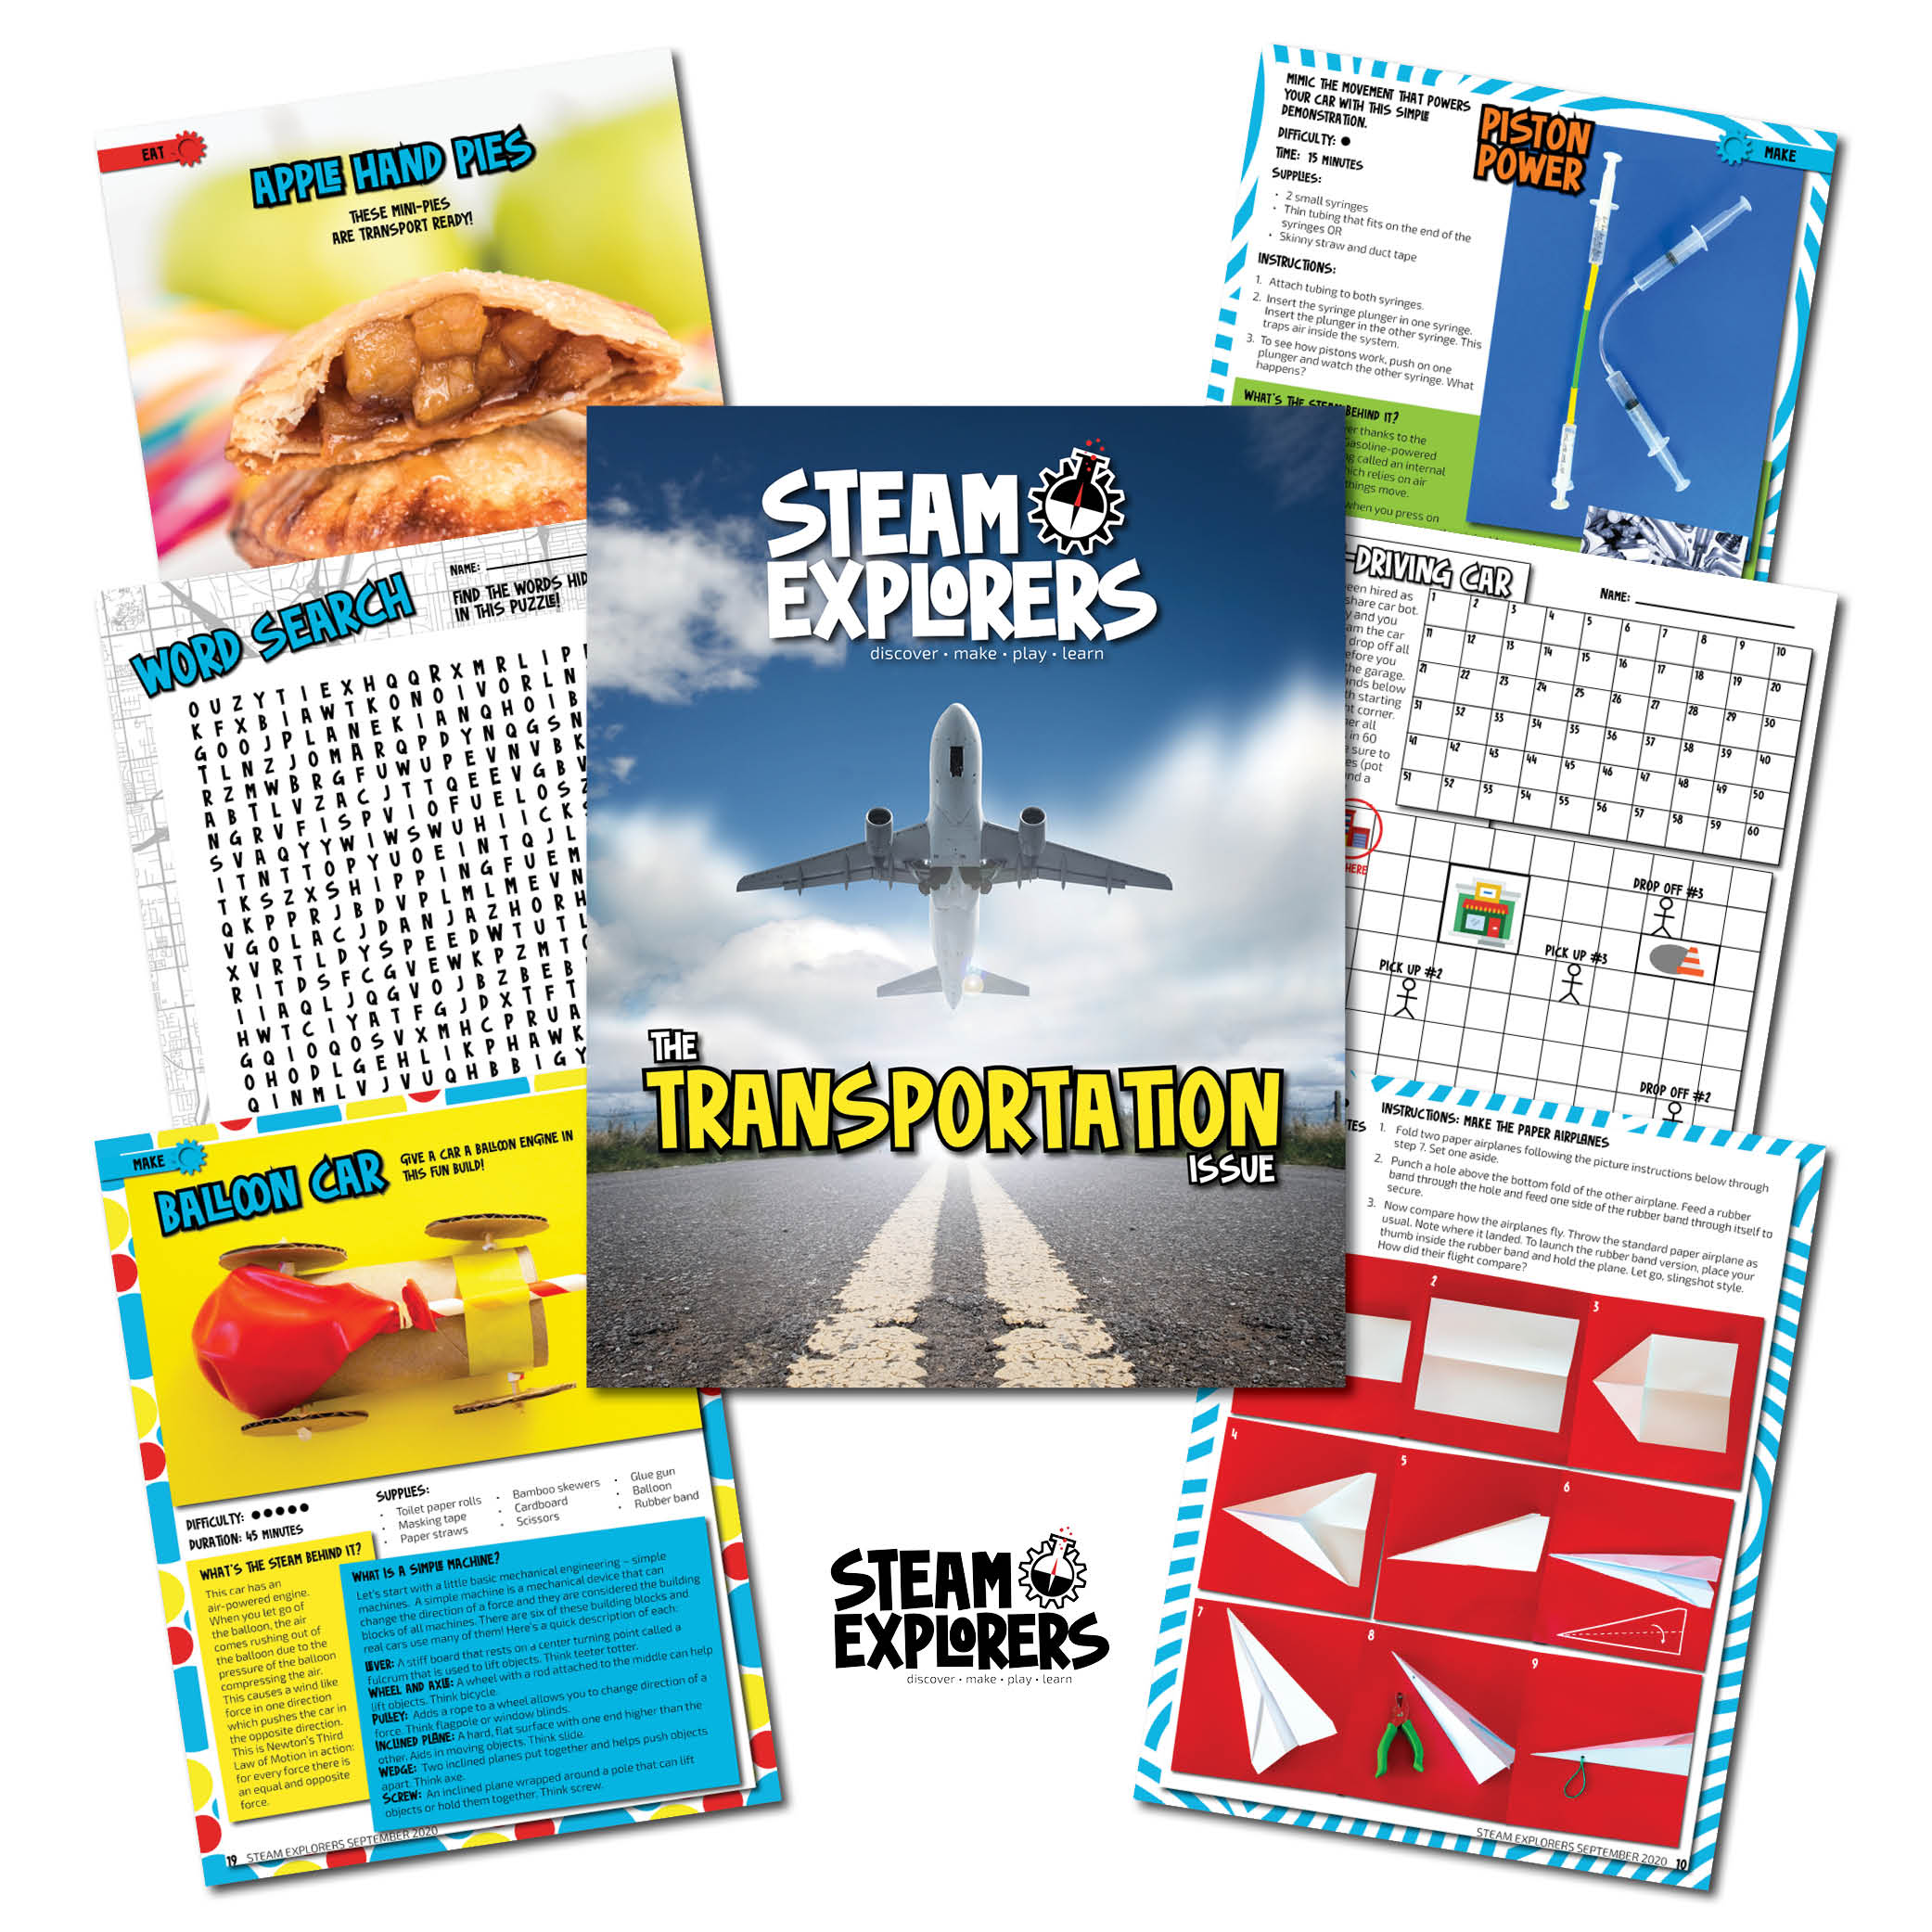 steam explorers whats inside collage - transportation